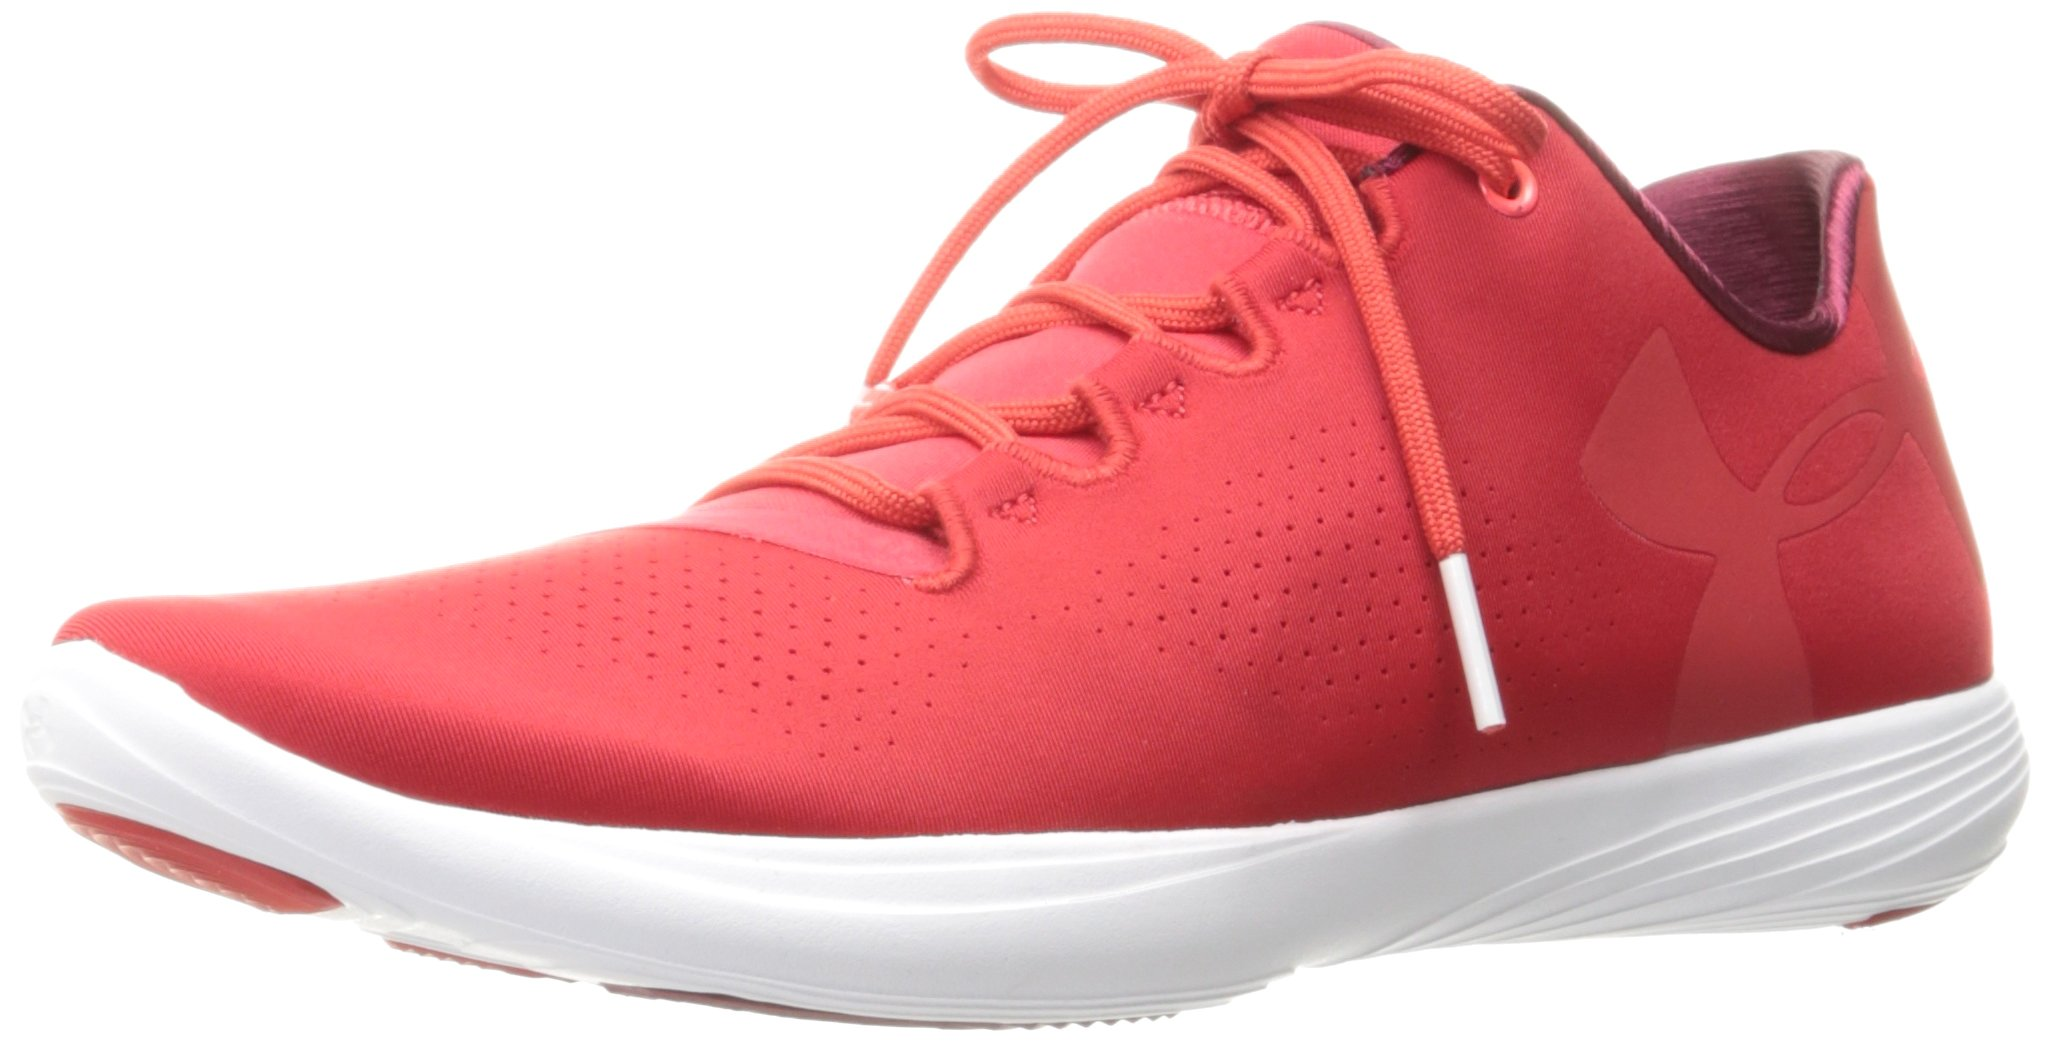 best cheap b9d72 8022c Galleon - Under Armour Women s Street Precision Low Training Shoes,  Red White V1, 10